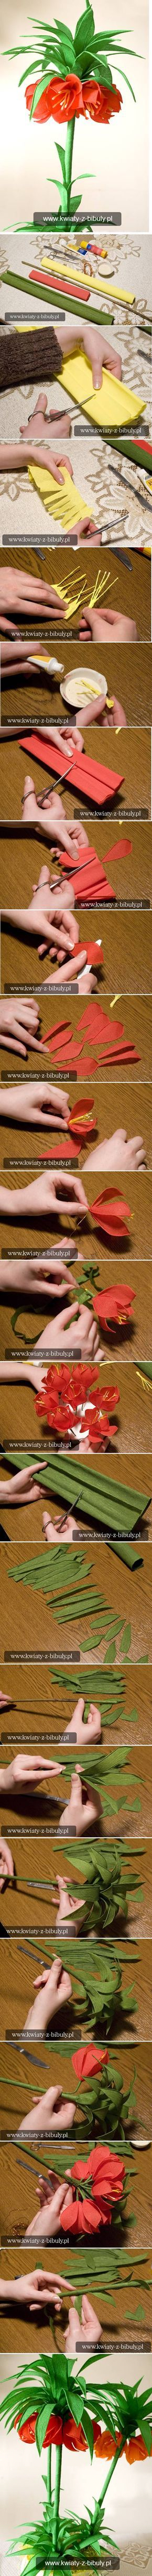 http://www.usefuldiy.com/diy-pretty-crepe-paper-flower/